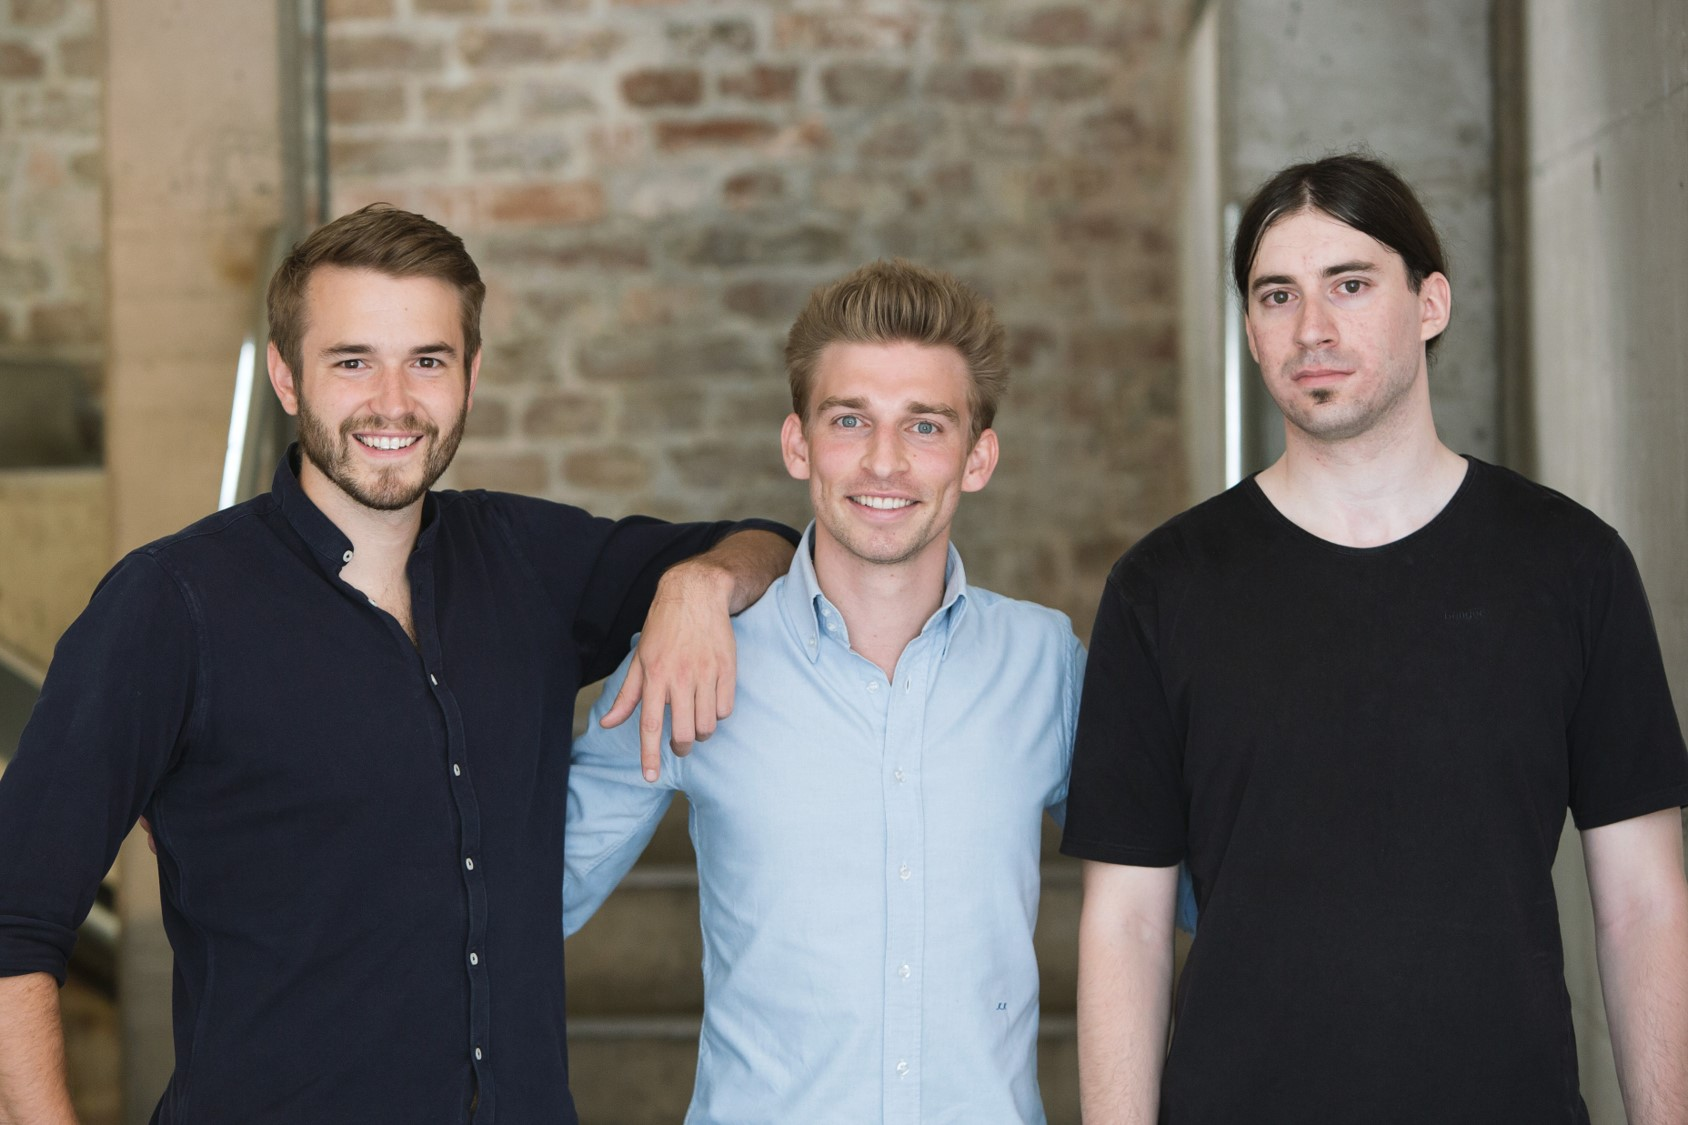 Austrian green-tech startup Refurbed raises €2M led by Inventure Partners